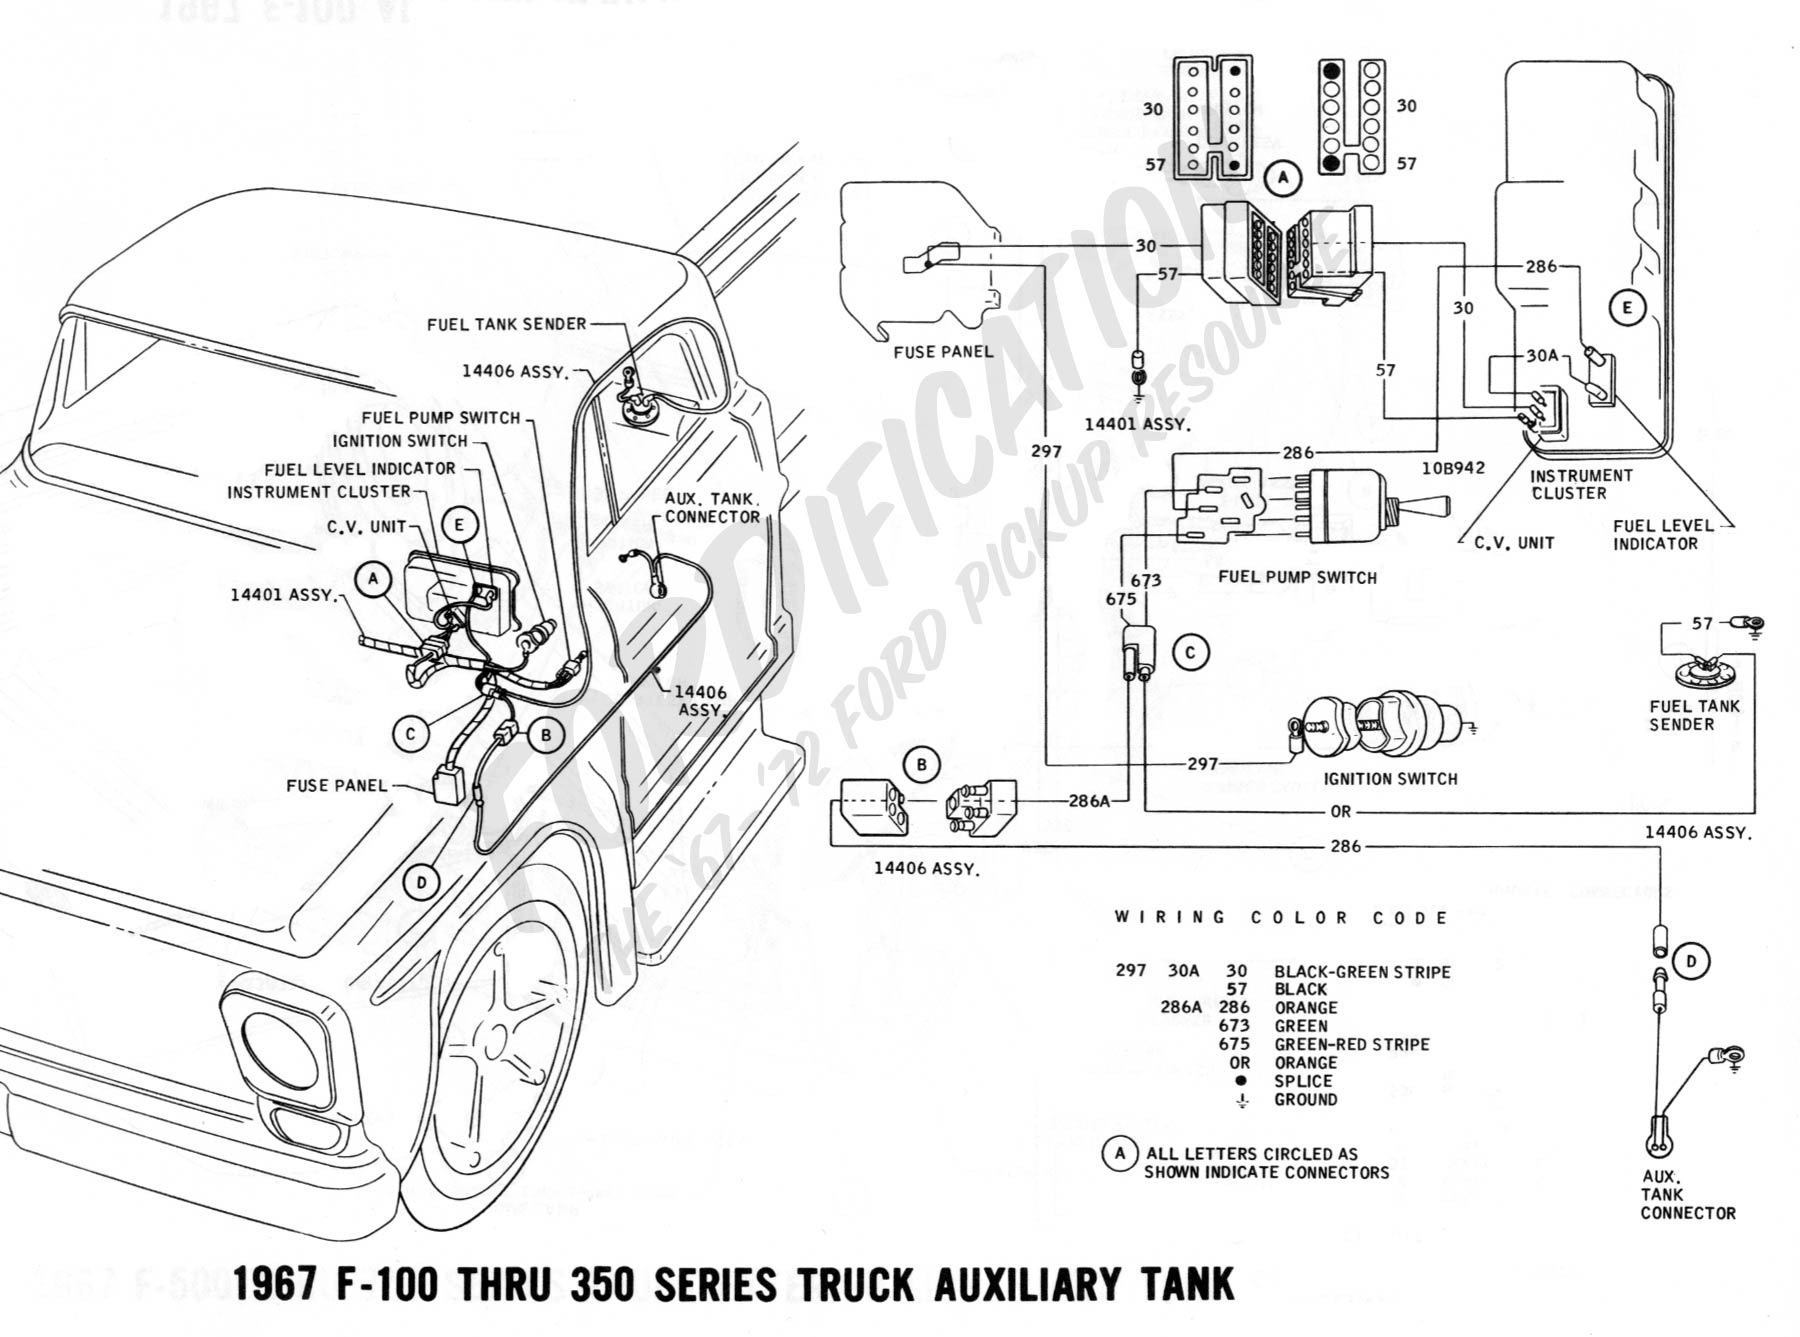 1969 F100 Wiring Harness Ford Diagram For Fuel System Data Diagrams Truck Technical Drawings And Schematics Section H Rh Fordification Com Schematic